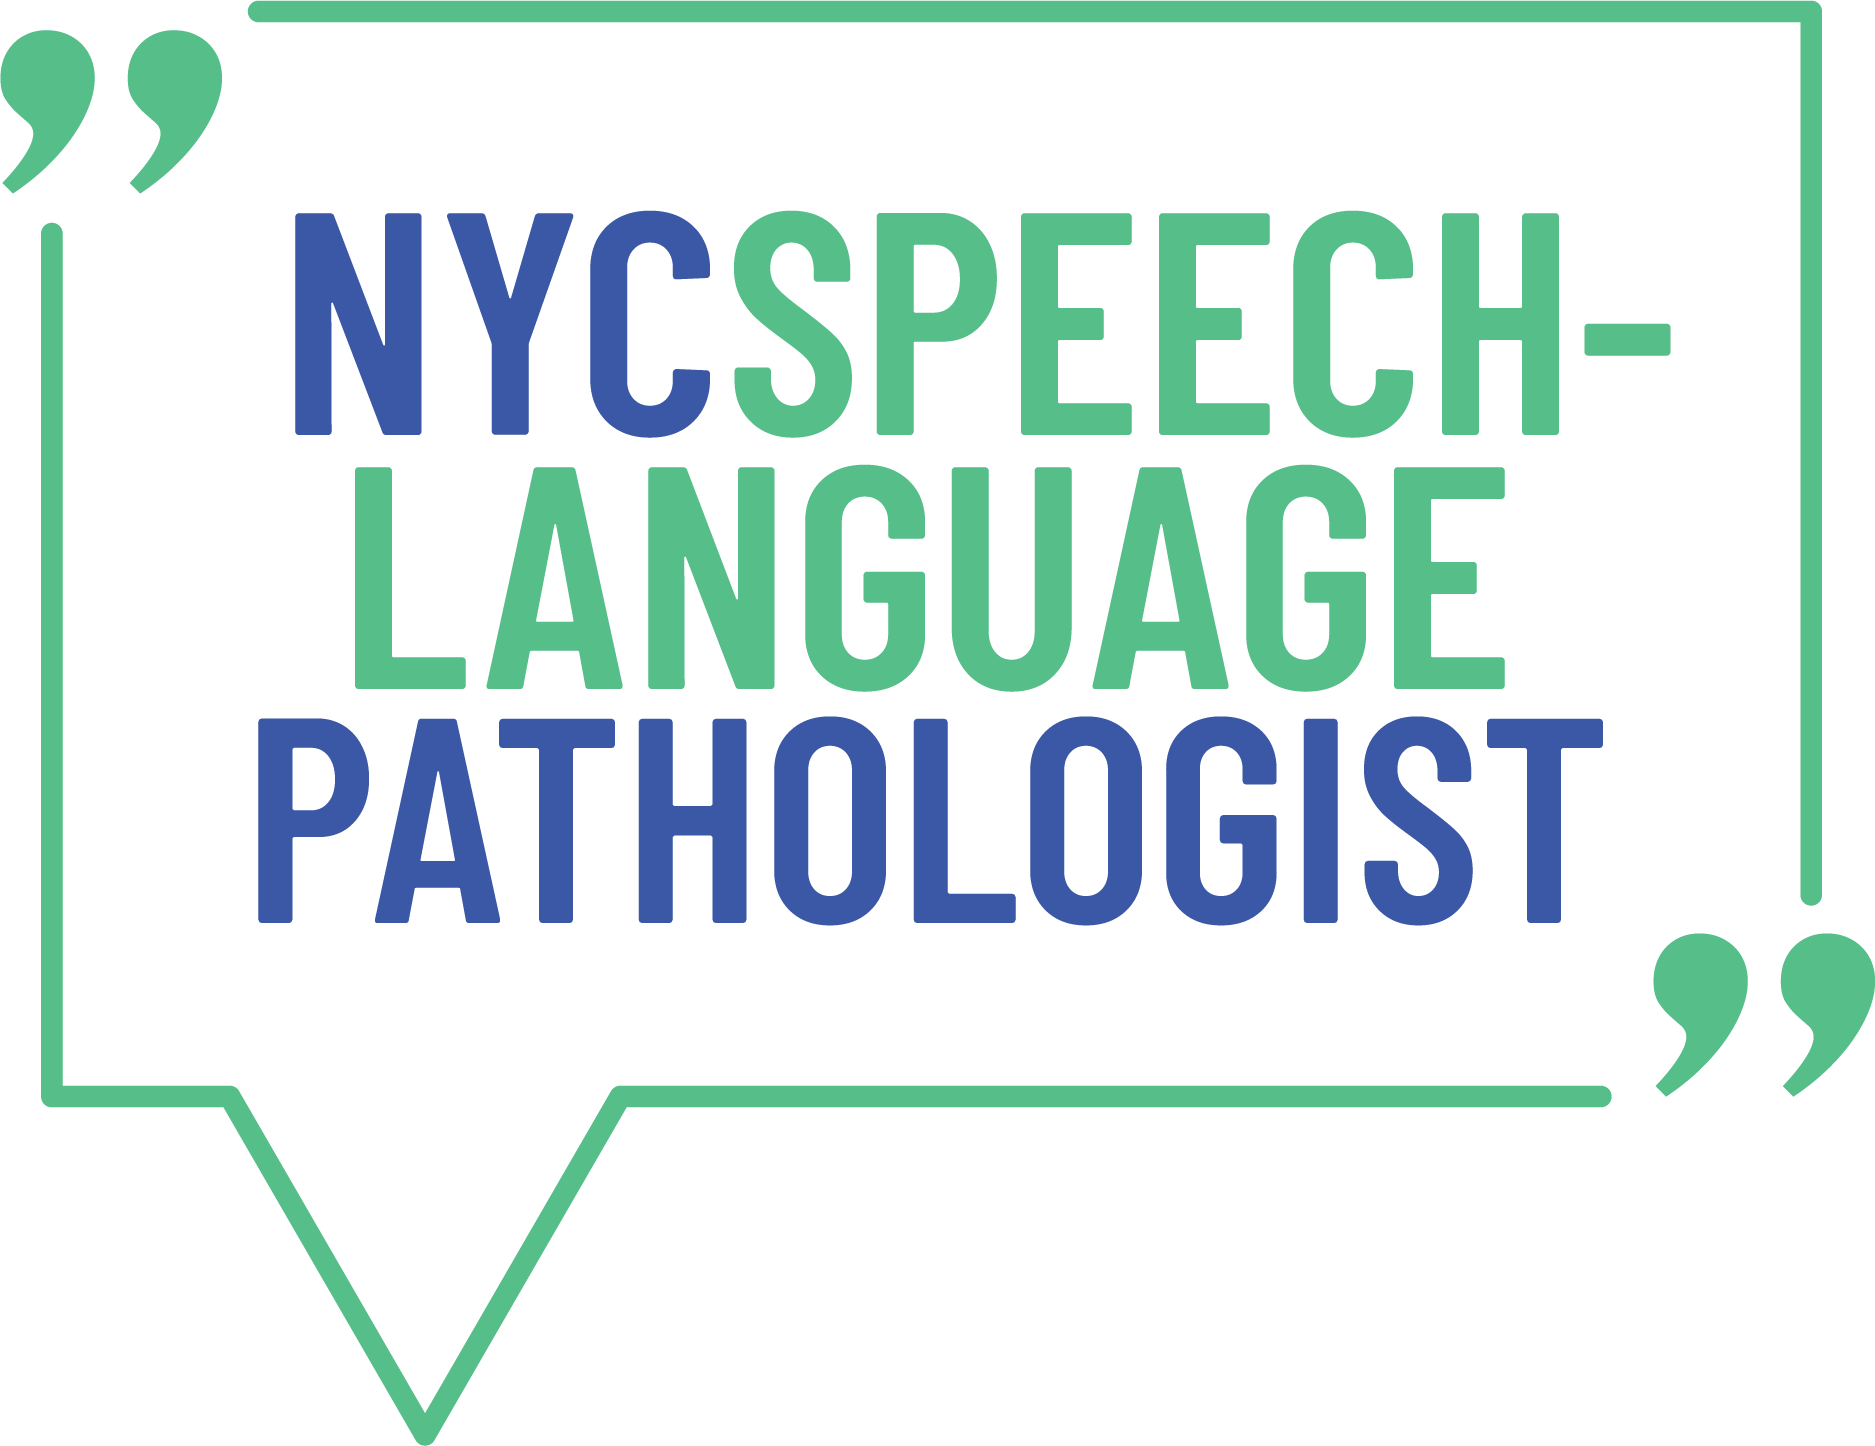 NYC Speech-Language Pathologist